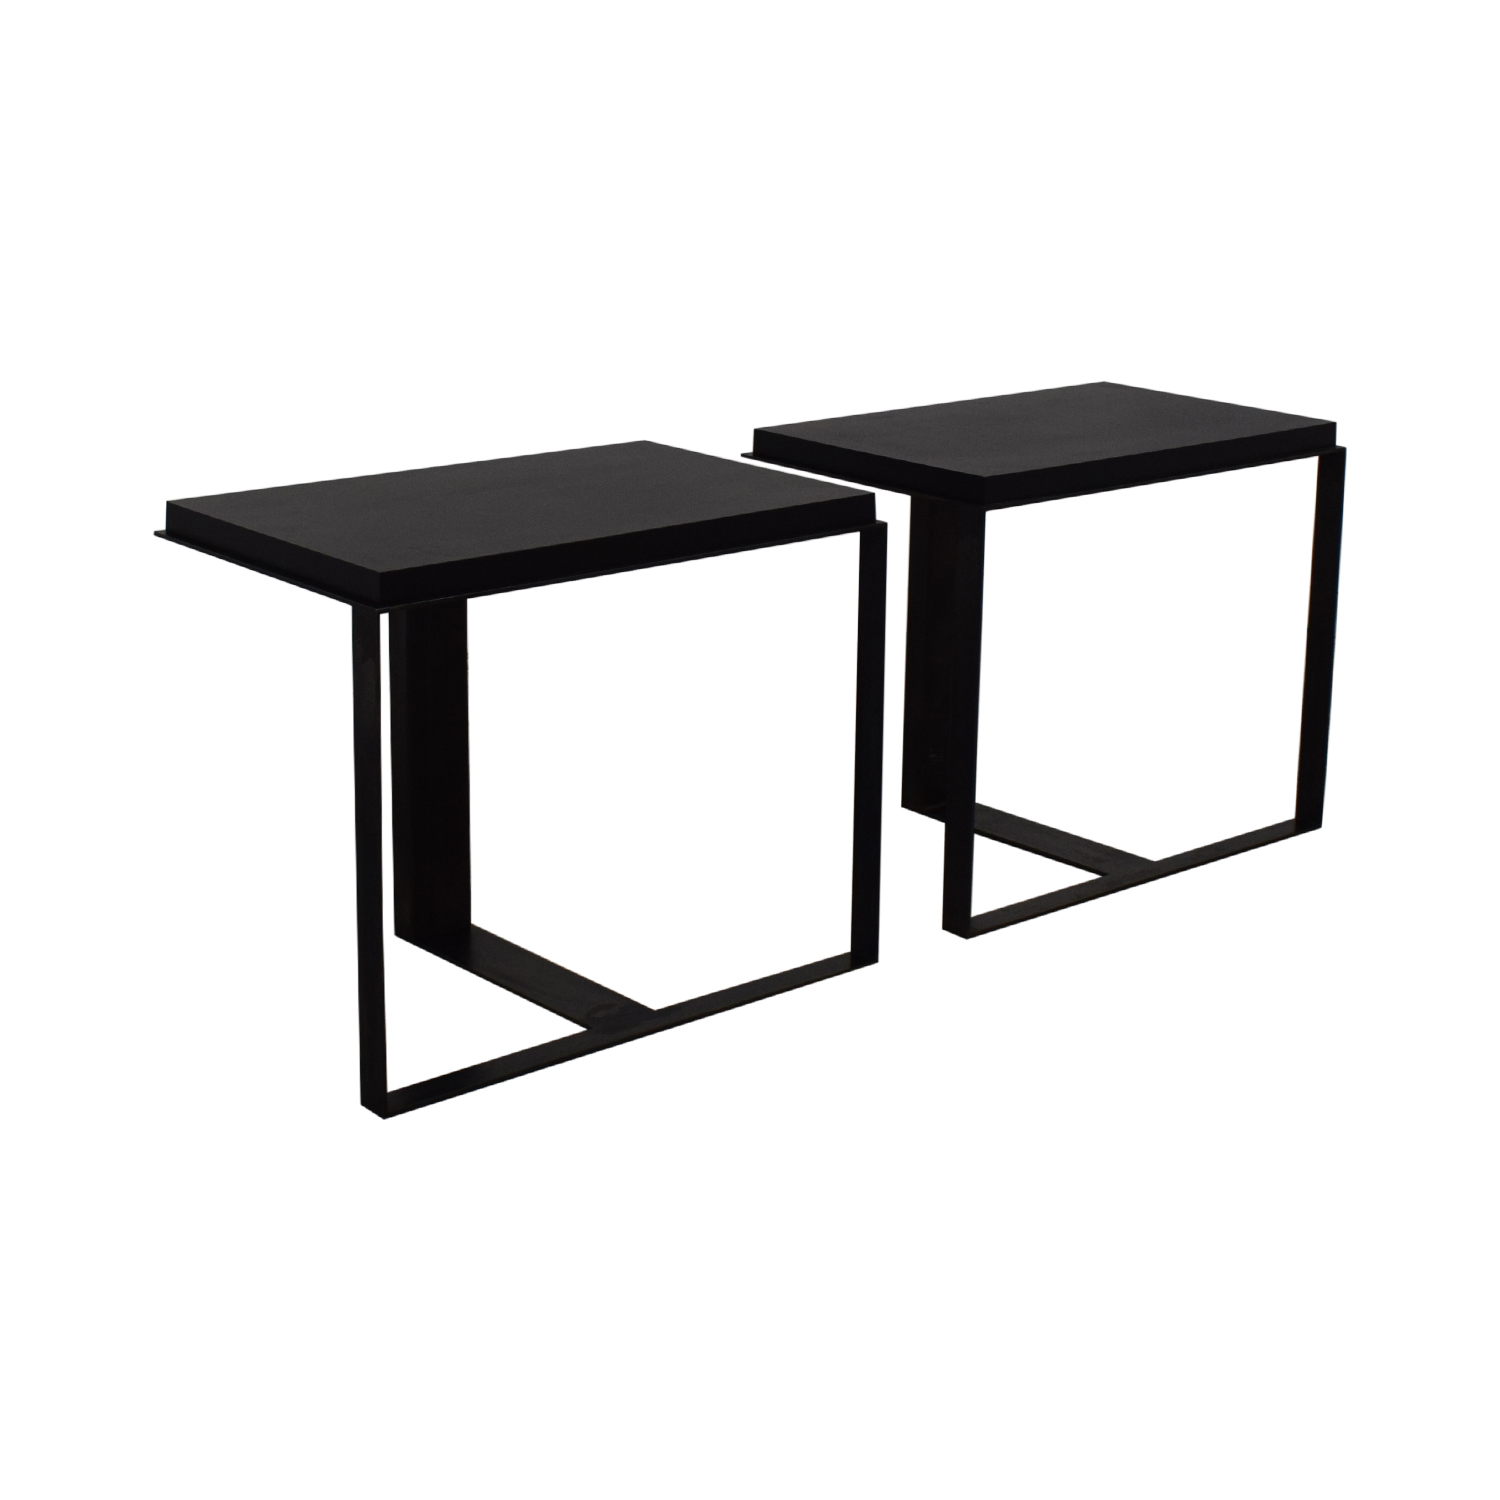 buy Black Metallic End Tables  End Tables